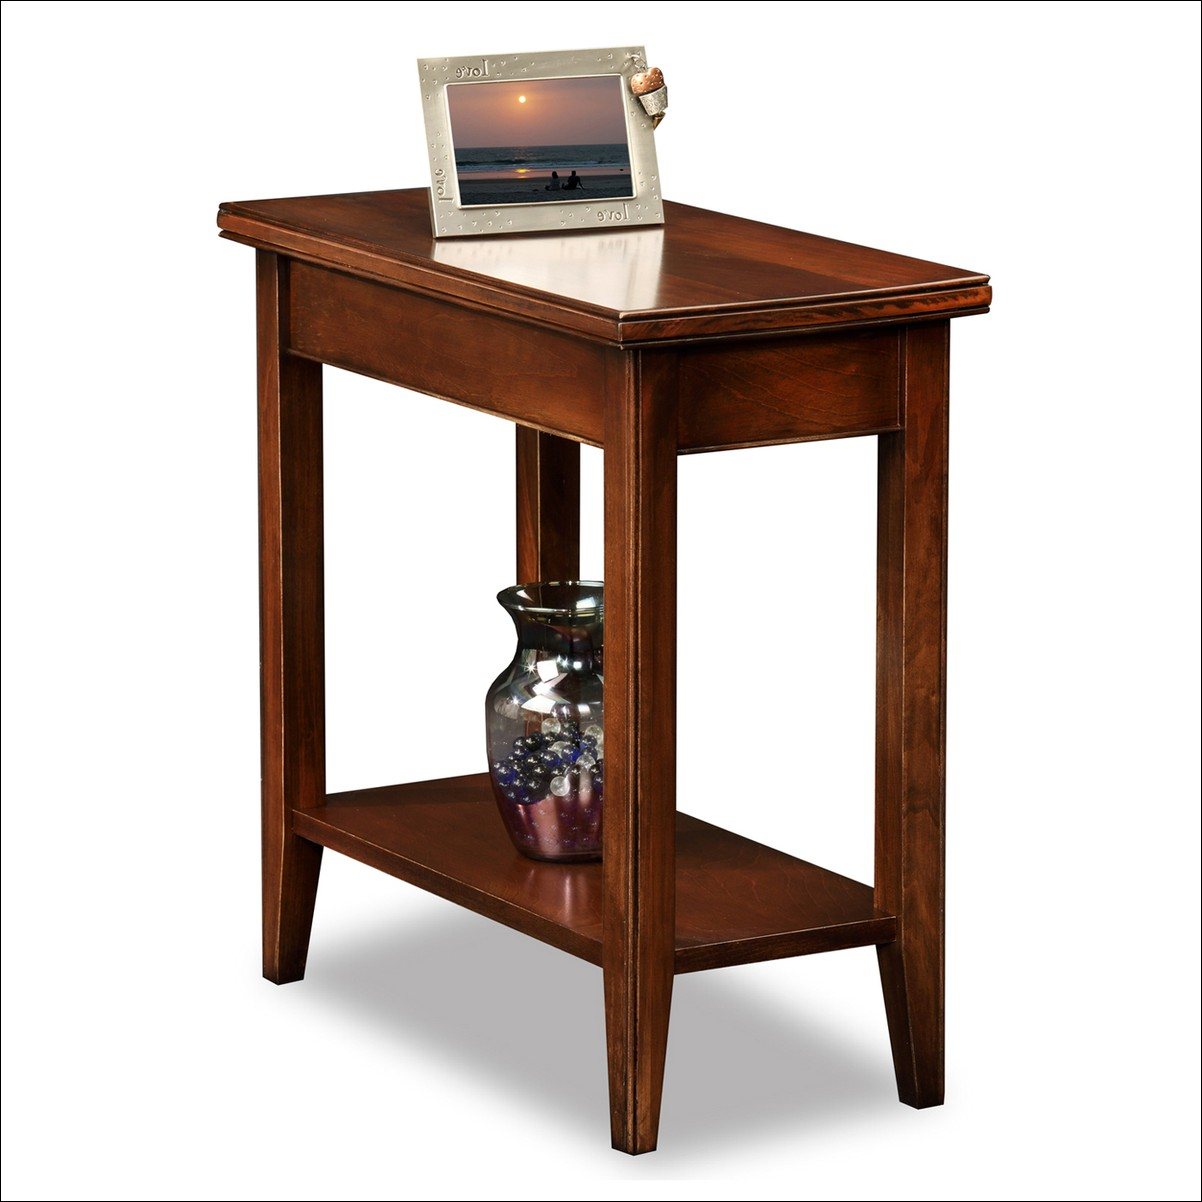 coffee accent tables space efficient tall skinny end table ikea thin and bench built dog kennel kohls free shipping promo lace cloth tablecloths silver tray gun safe that looks